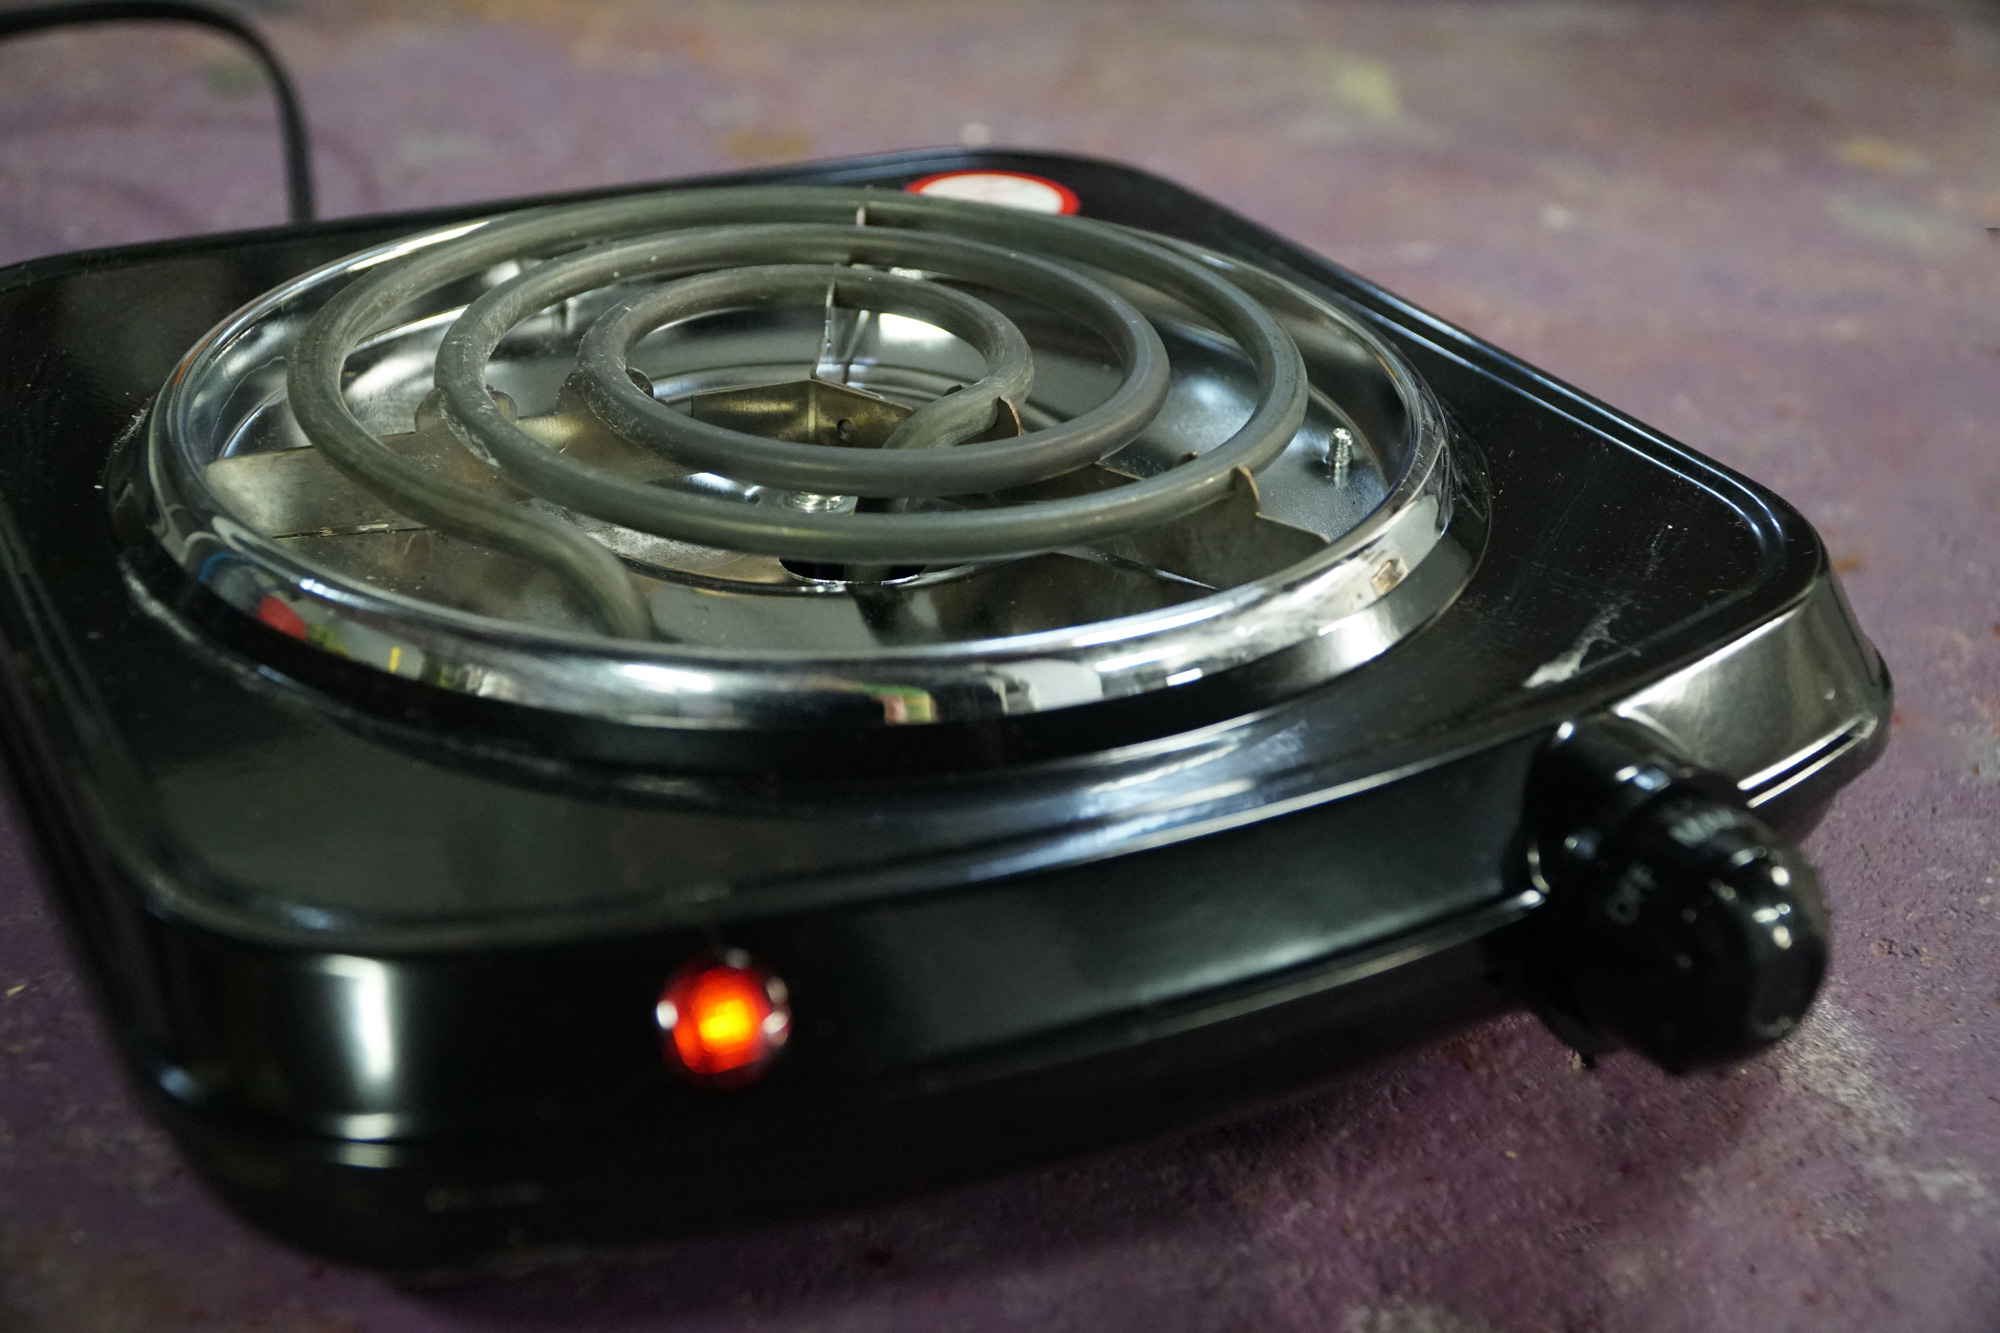 Review: Mainstays $9 Portable Electric Burner